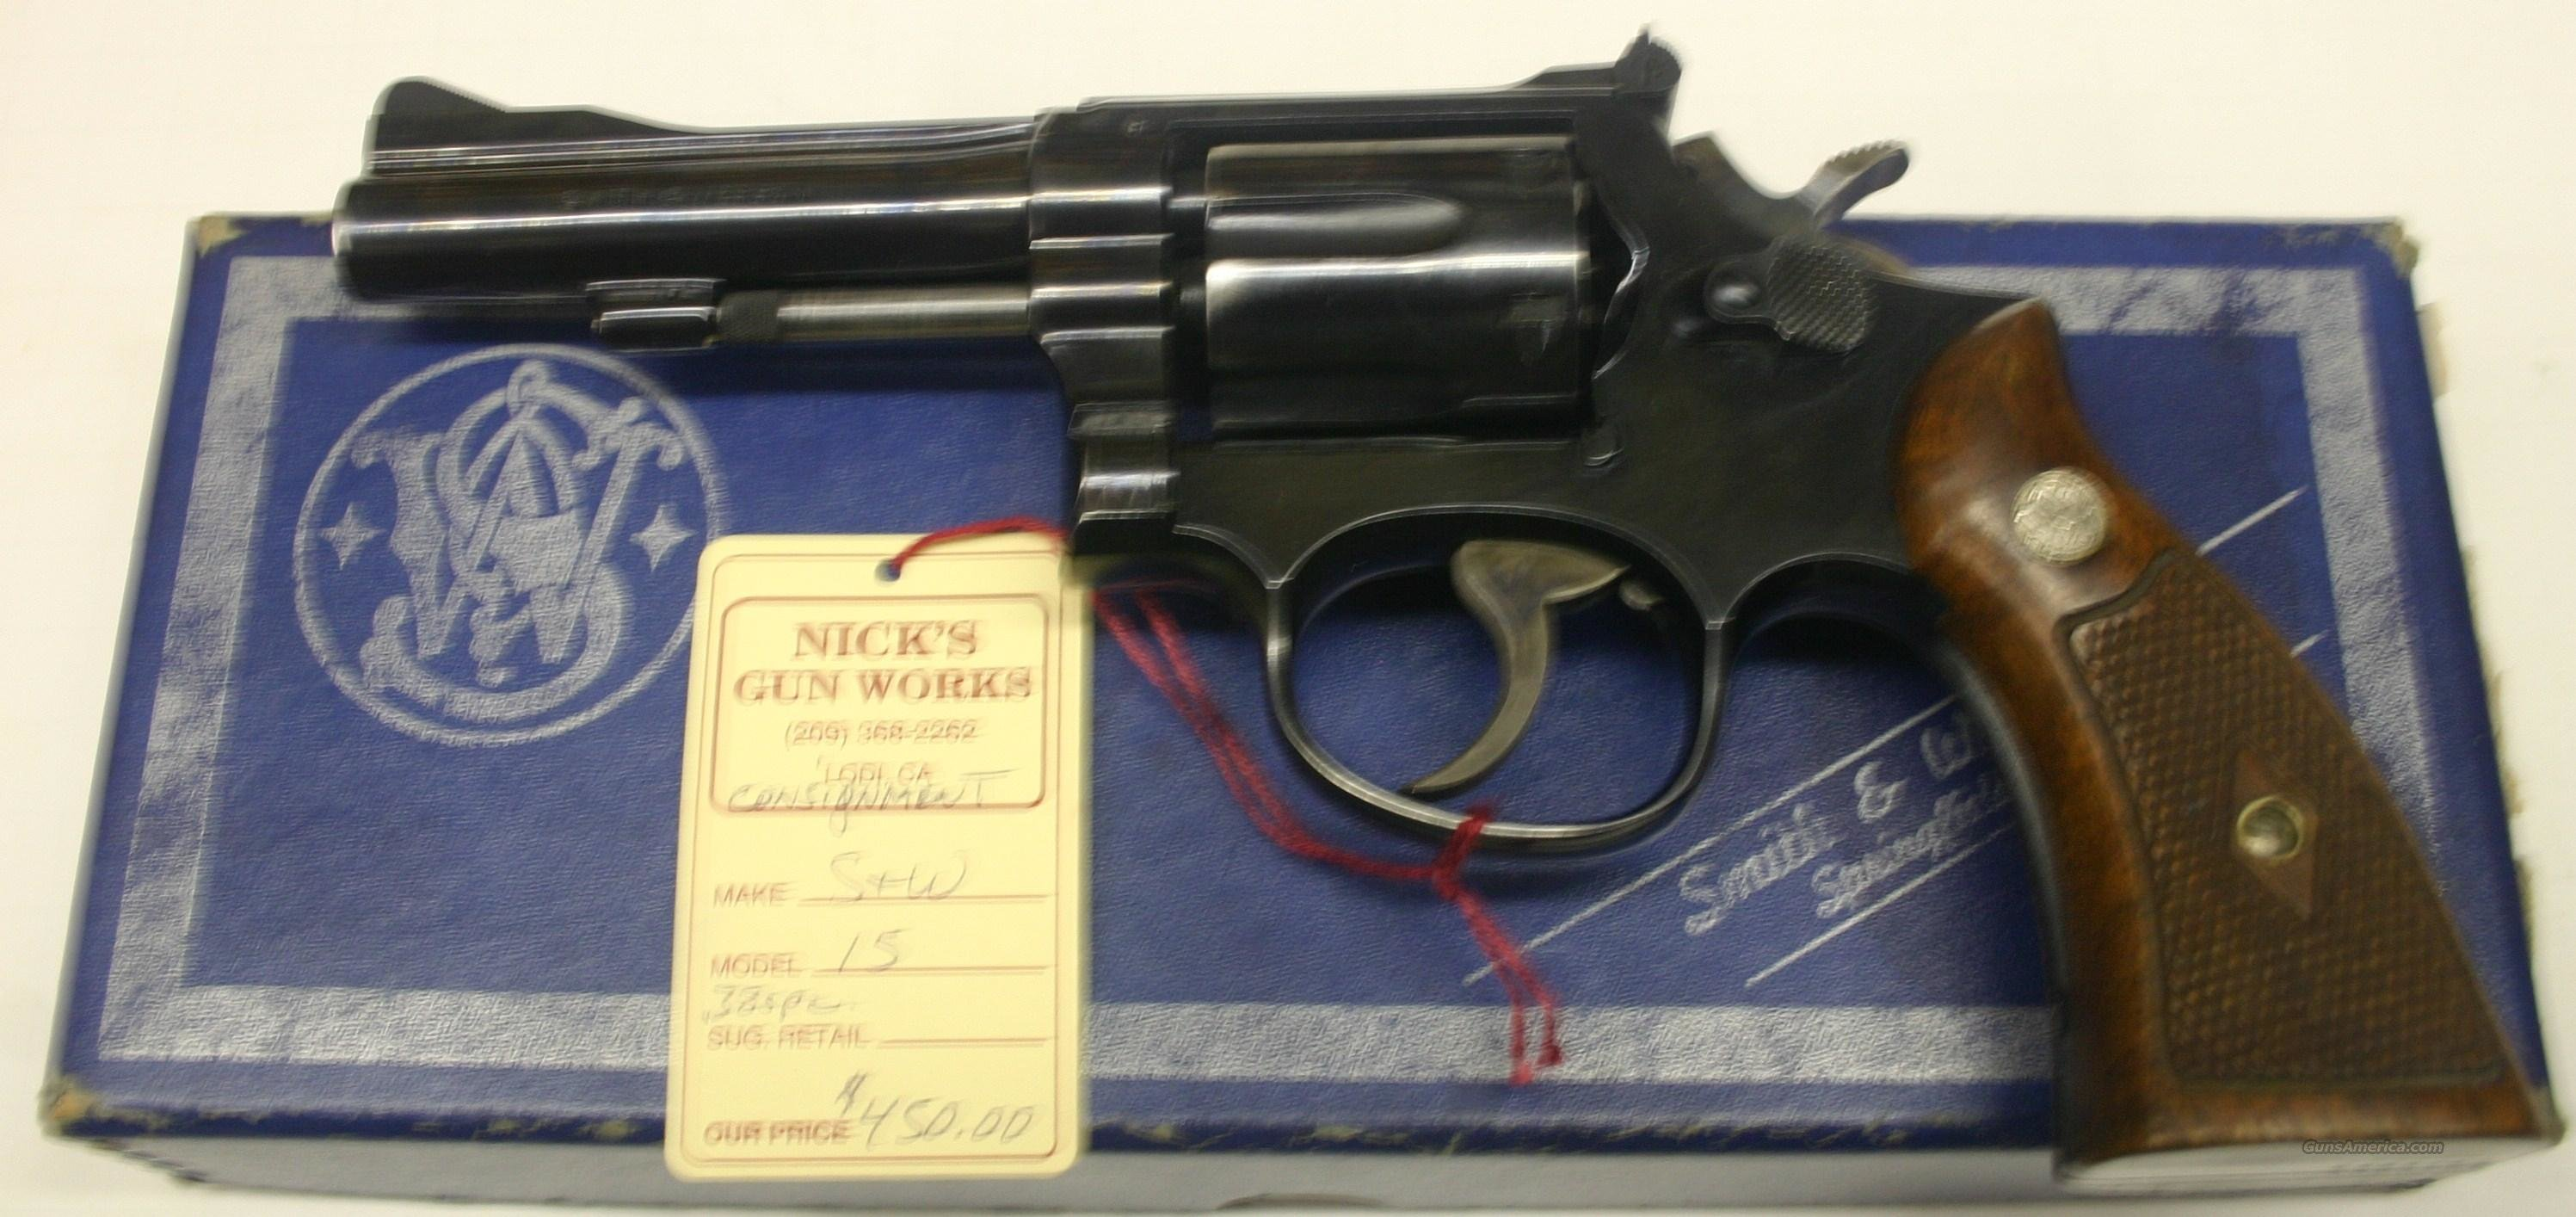 Smith & Wesson Model 15 .38 special   Guns > Pistols > Smith & Wesson Revolvers > Full Frame Revolver